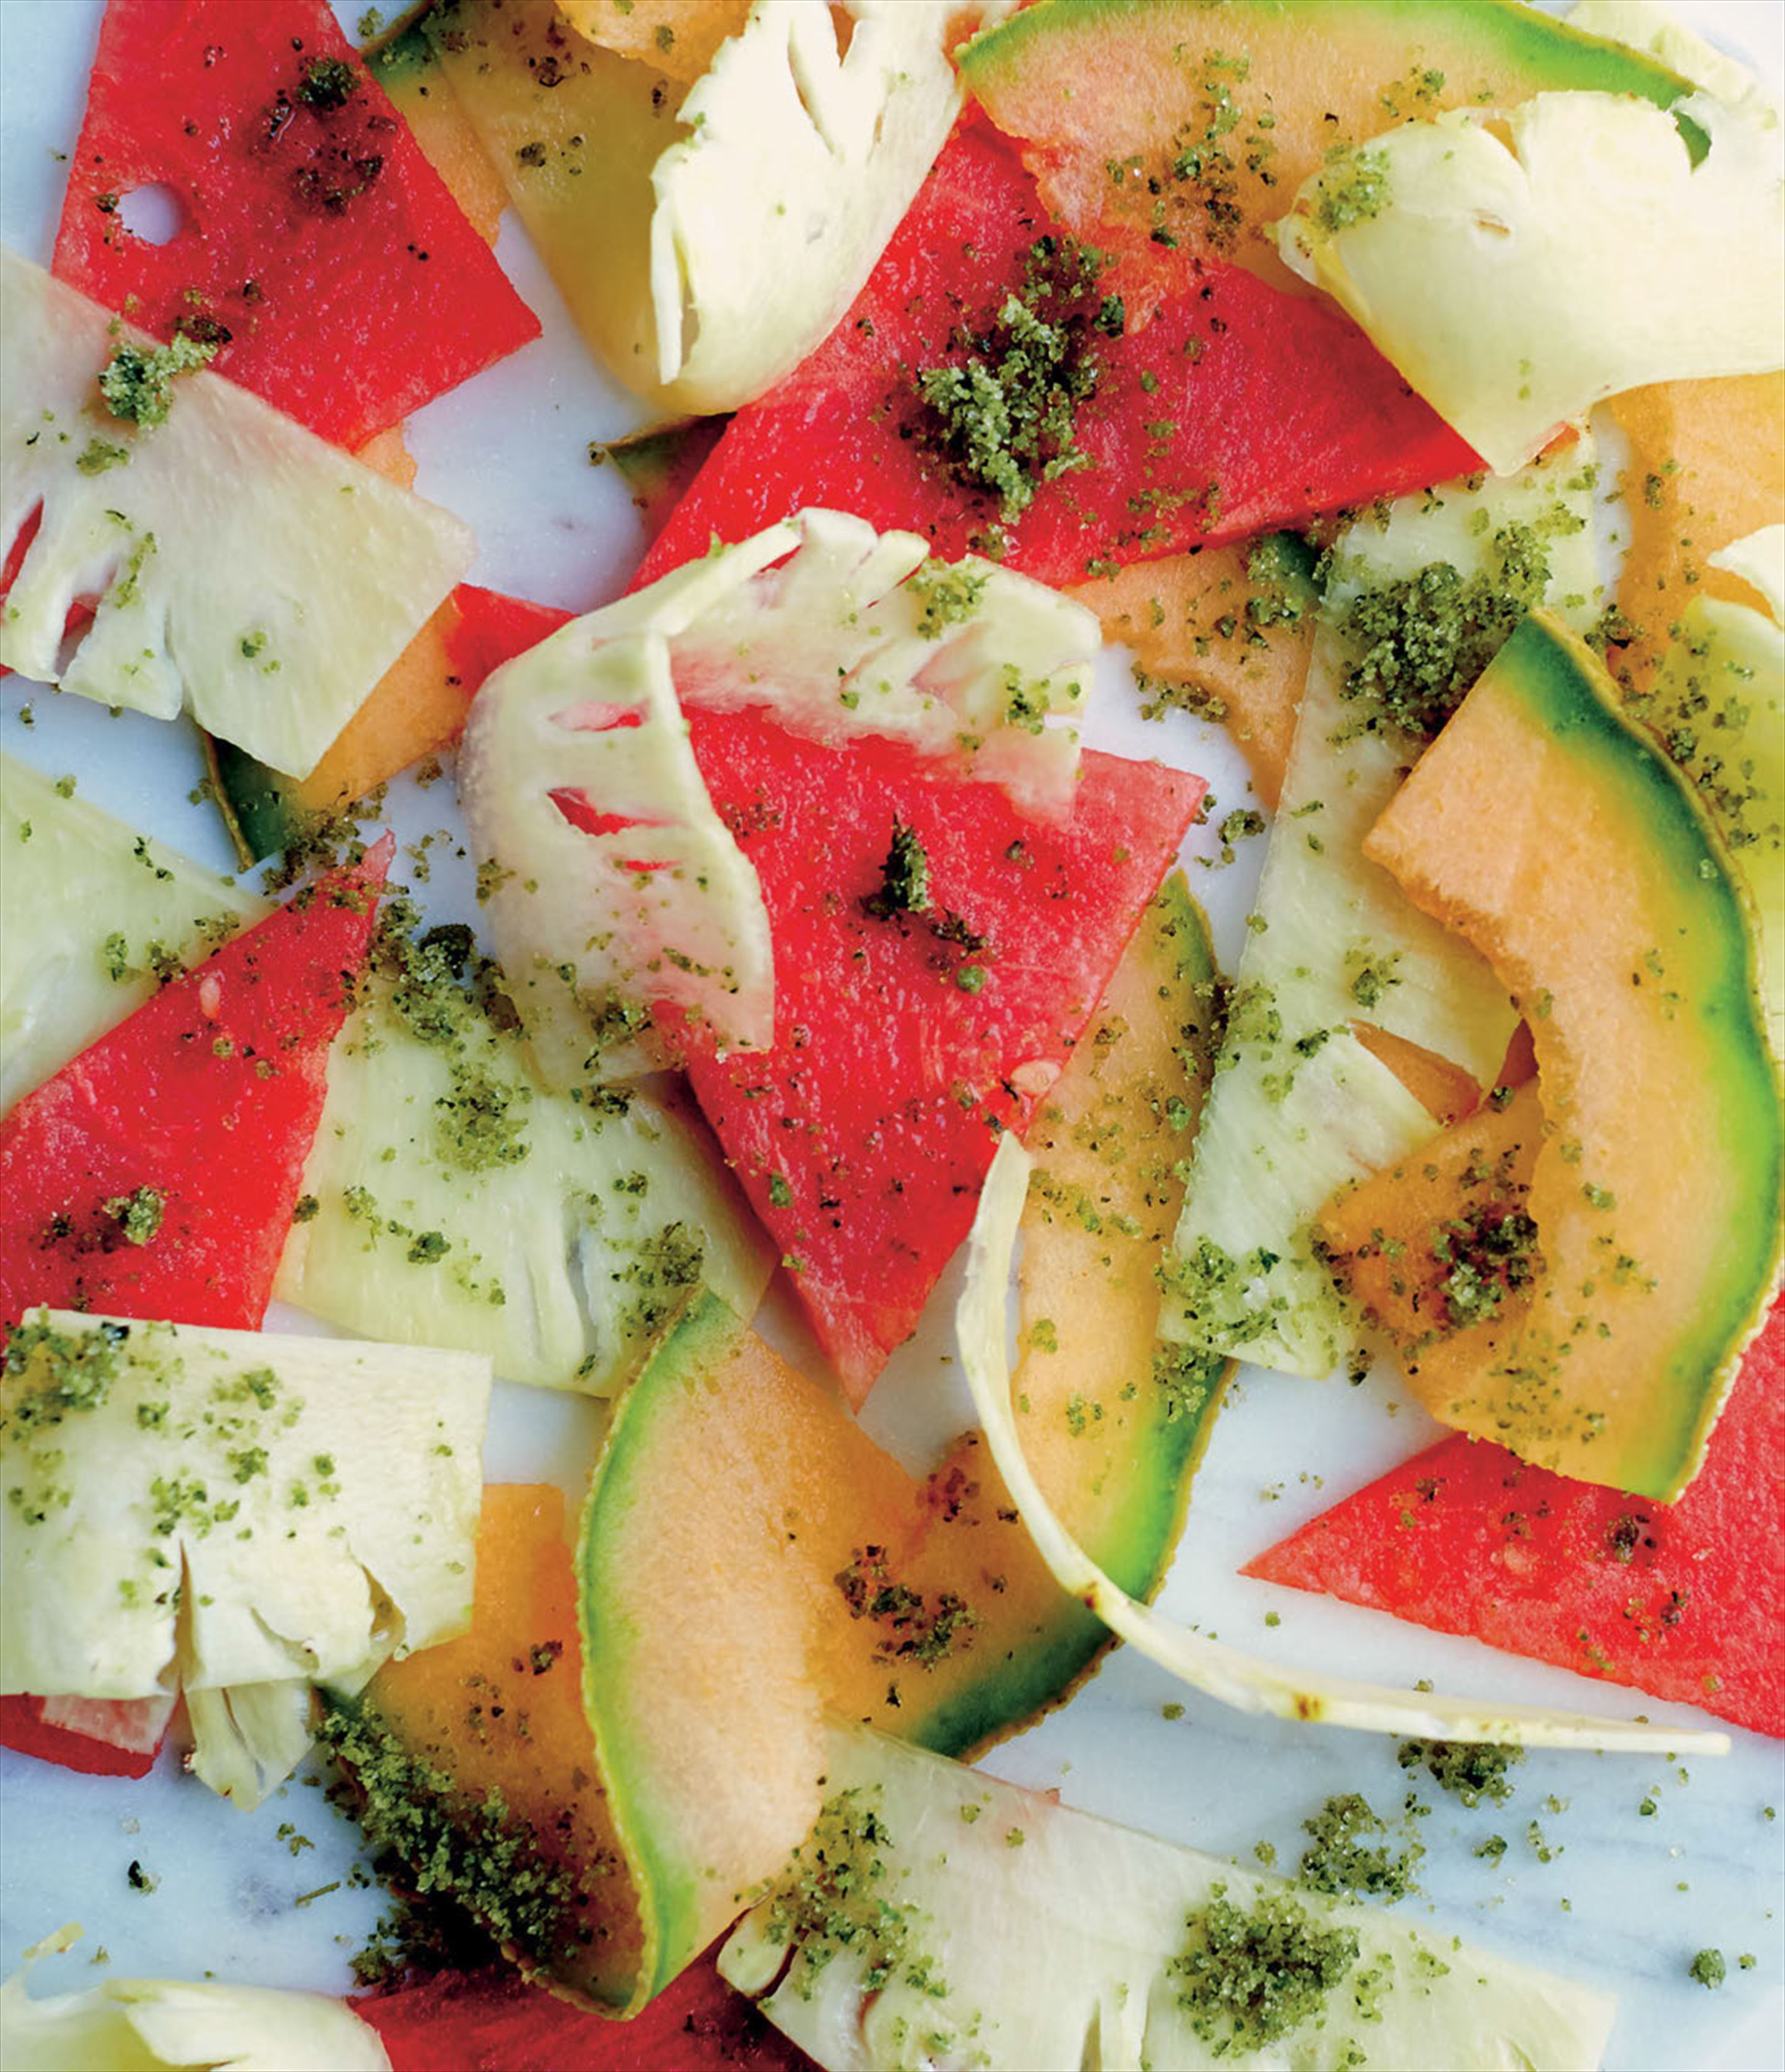 Pineapple and melon carpaccio with mojito sugar